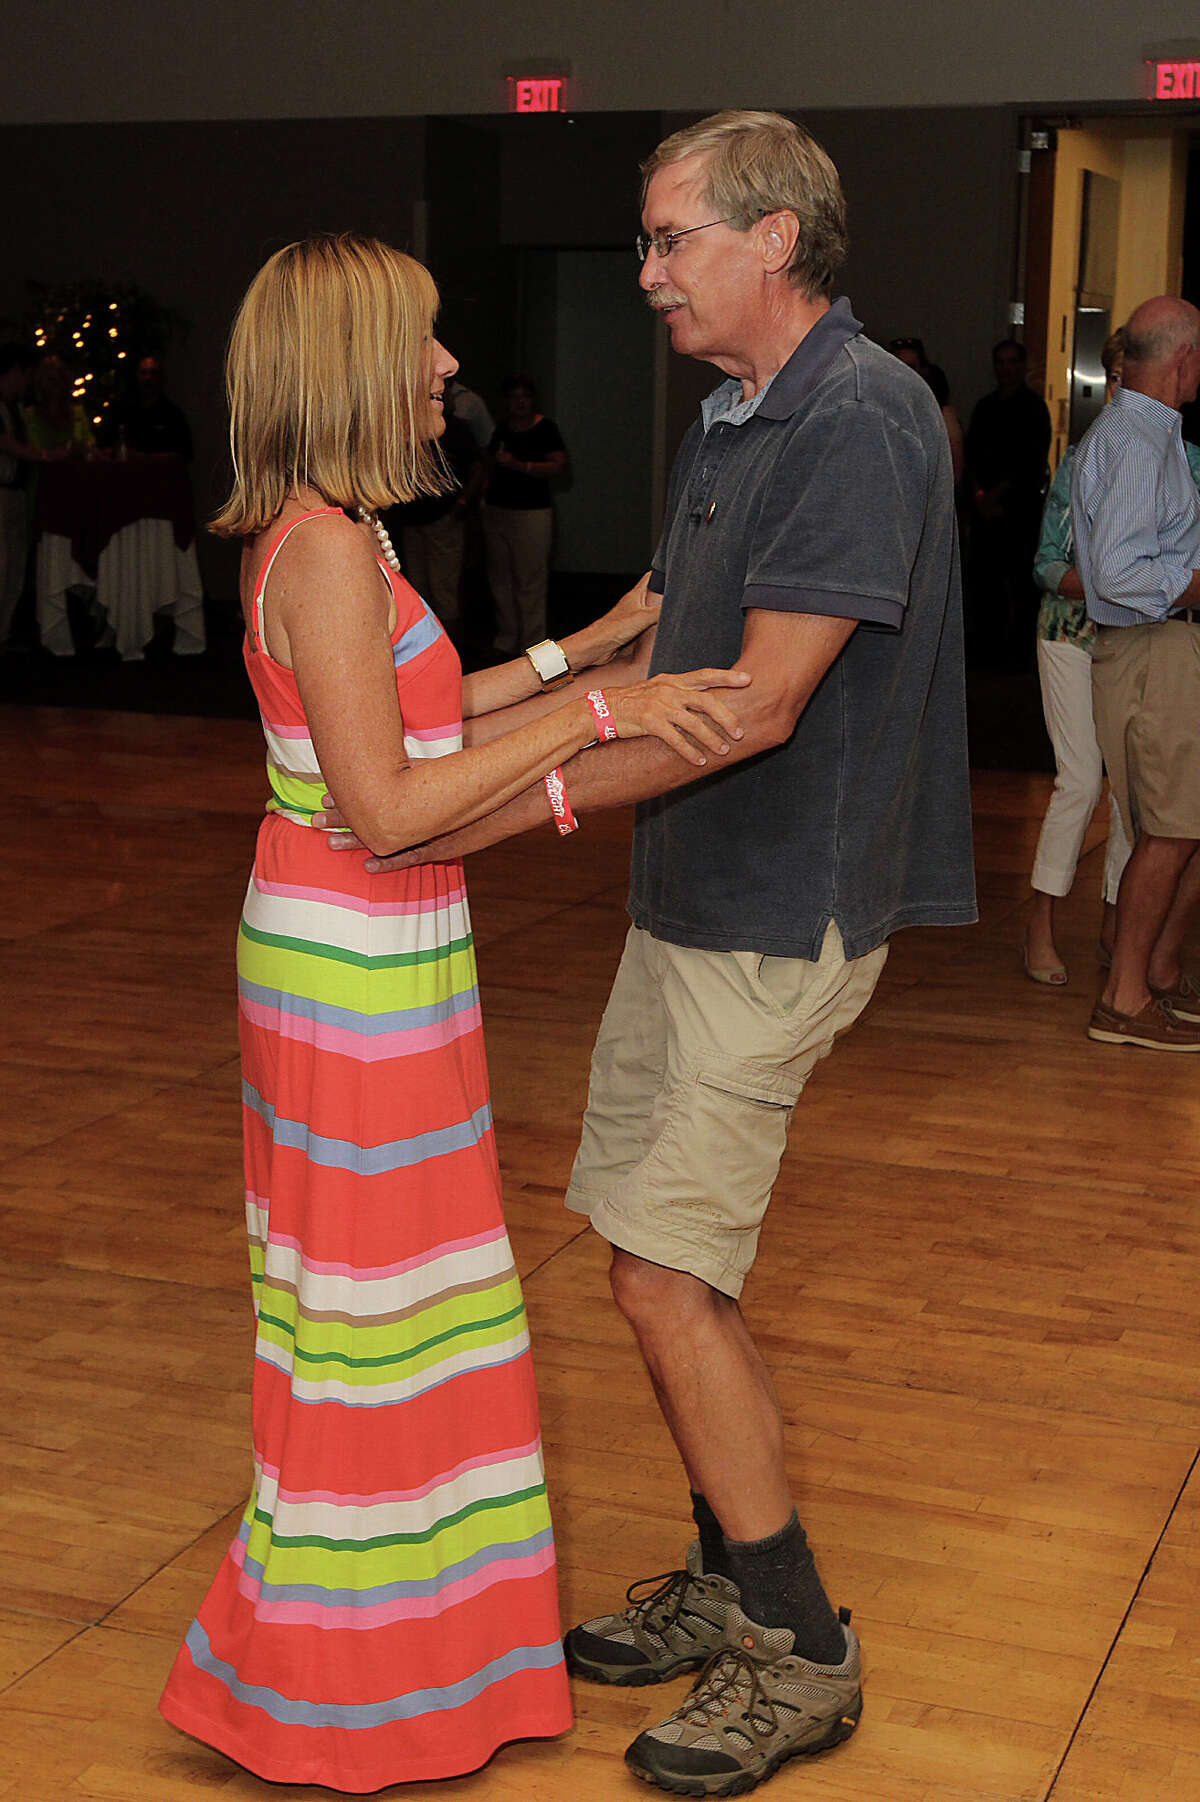 Were you Seen at the Saratoga 150 $2 Bettors Ball, a benefit for Backstretch Charities, at the Saratoga City Center in Saratoga Springs on Saturday, Aug. 17, 2013?